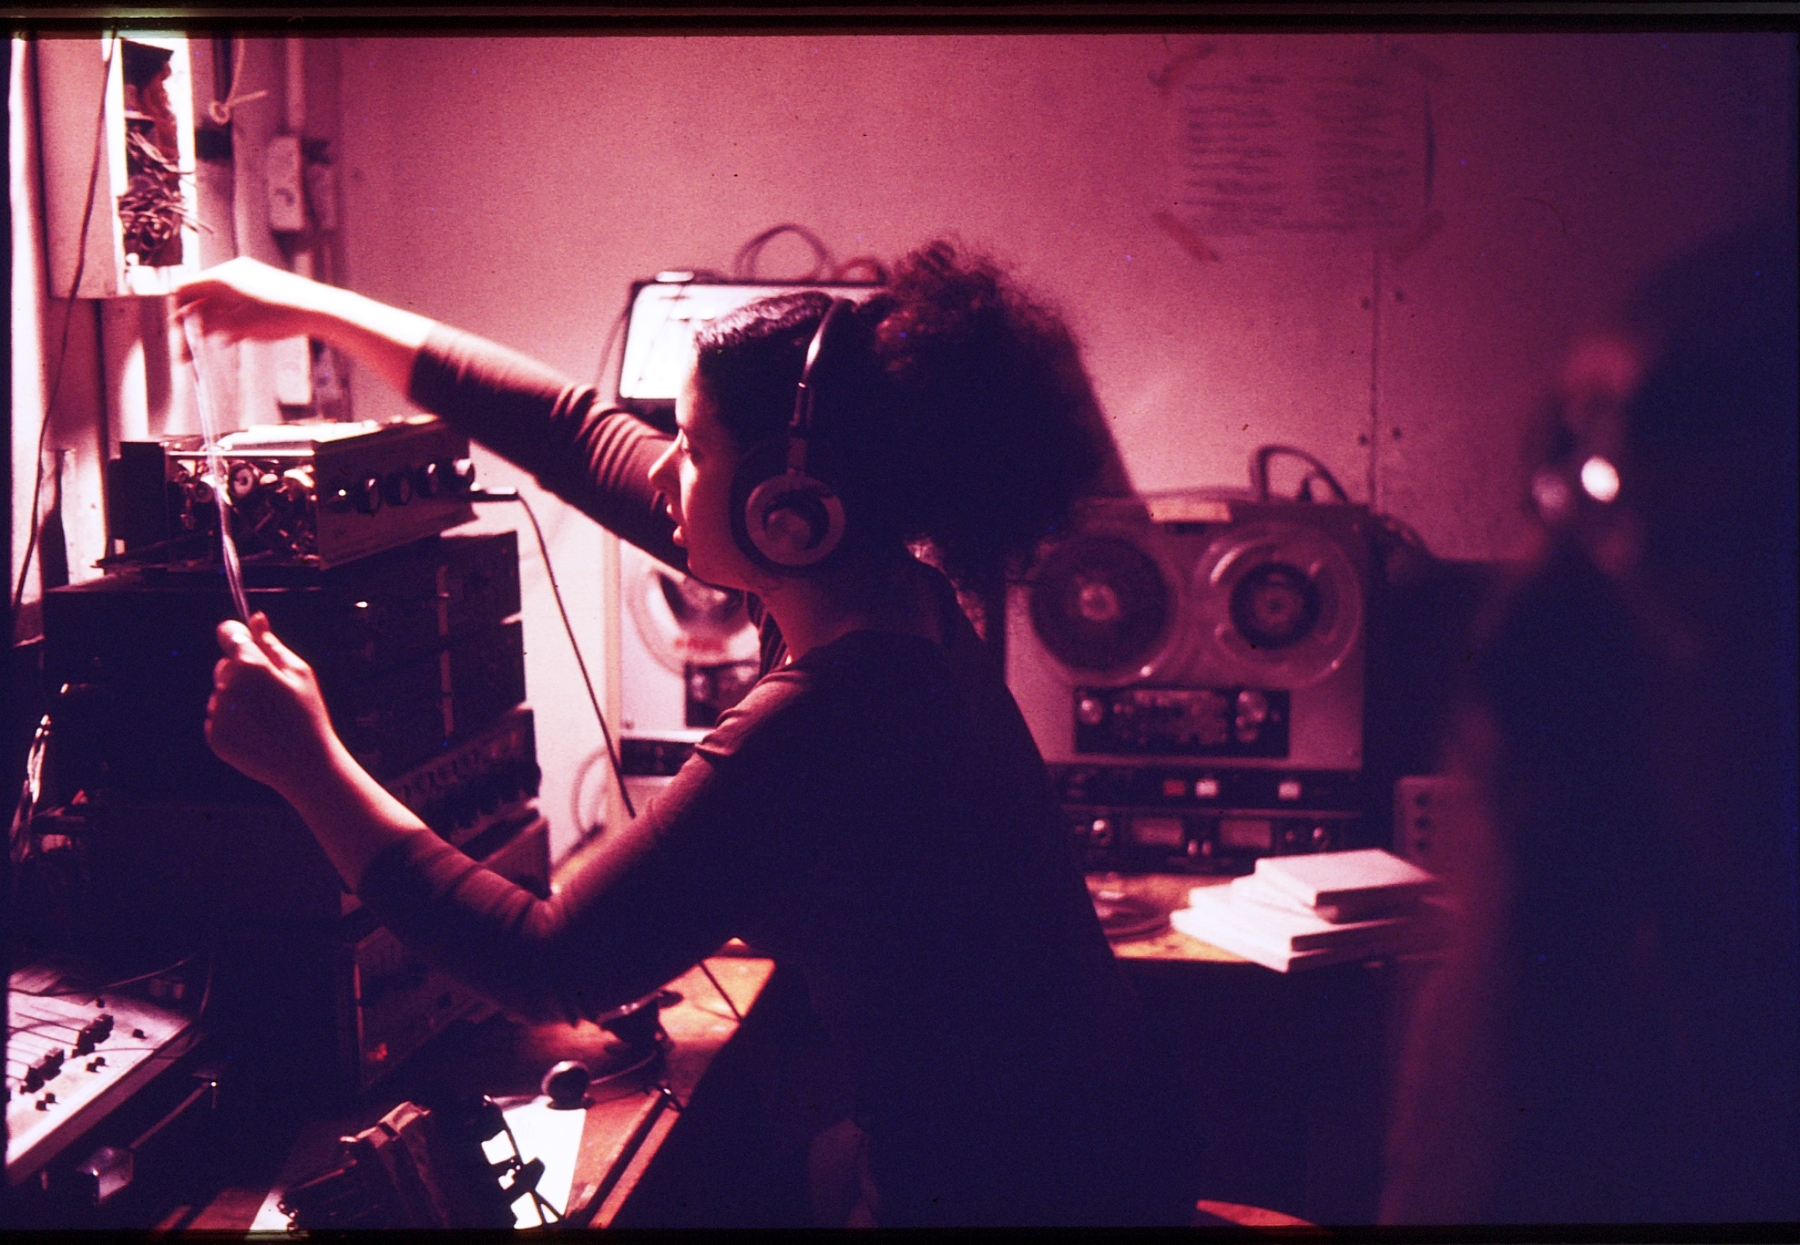 SIM alum Amy Cotton teching a show in the projection booth in the Longwood Theater. During her time at MassArt, Cotton was a participant in the ZONE production of Kandinsky's Yellow Sound at the Guggenheim Museum in NYC.